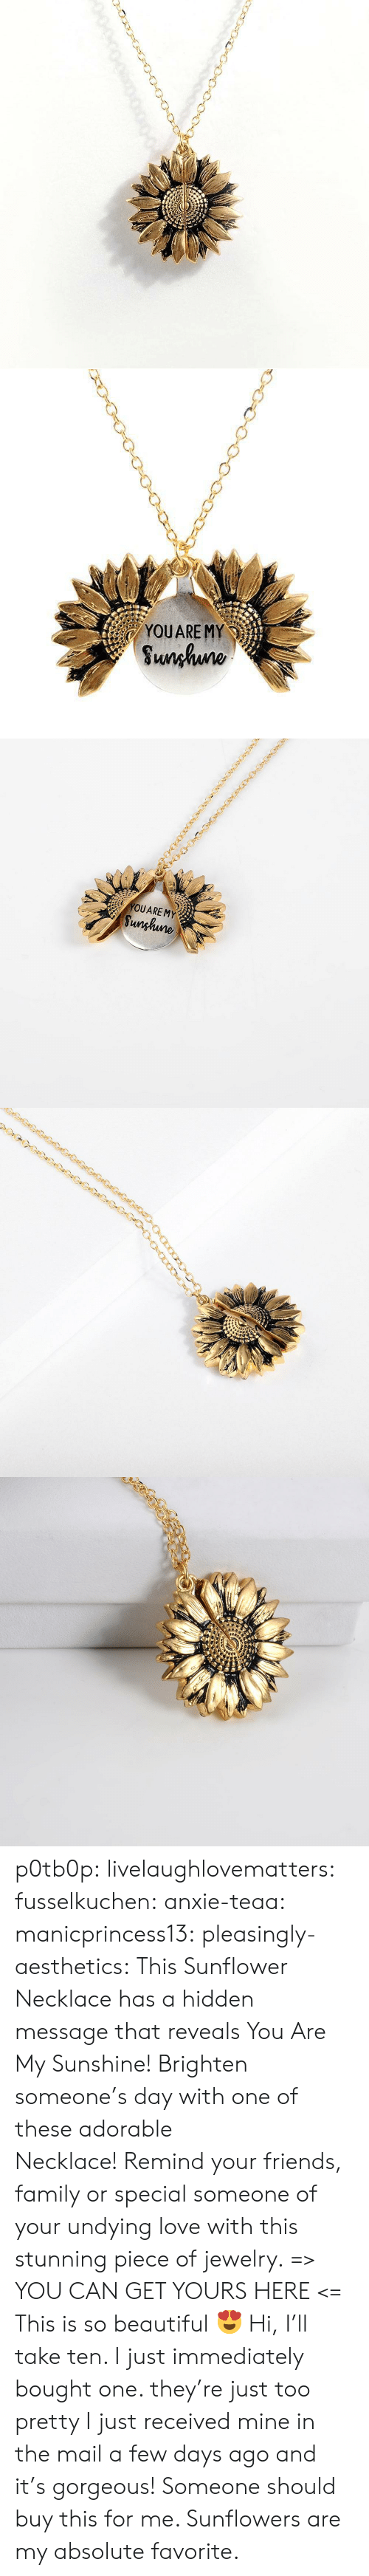 Beautiful, Family, and Friends: YOUARE MY  Sunhuno   YOUARE MY  Sunghune p0tb0p:  livelaughlovematters: fusselkuchen:  anxie-teaa:   manicprincess13:   pleasingly-aesthetics:  This Sunflower Necklace has a hidden message that reveals You Are My Sunshine! Brighten someone's day with one of these adorable Necklace!Remind your friends, family or special someone of your undying love with this stunning piece of jewelry. => YOU CAN GET YOURS HERE <=   This is so beautiful 😍    Hi, I'll take ten.    I just immediately bought one. they're just too pretty   I just received mine in the mail a few days ago and it's gorgeous!   Someone should buy this for me. Sunflowers are my absolute favorite.